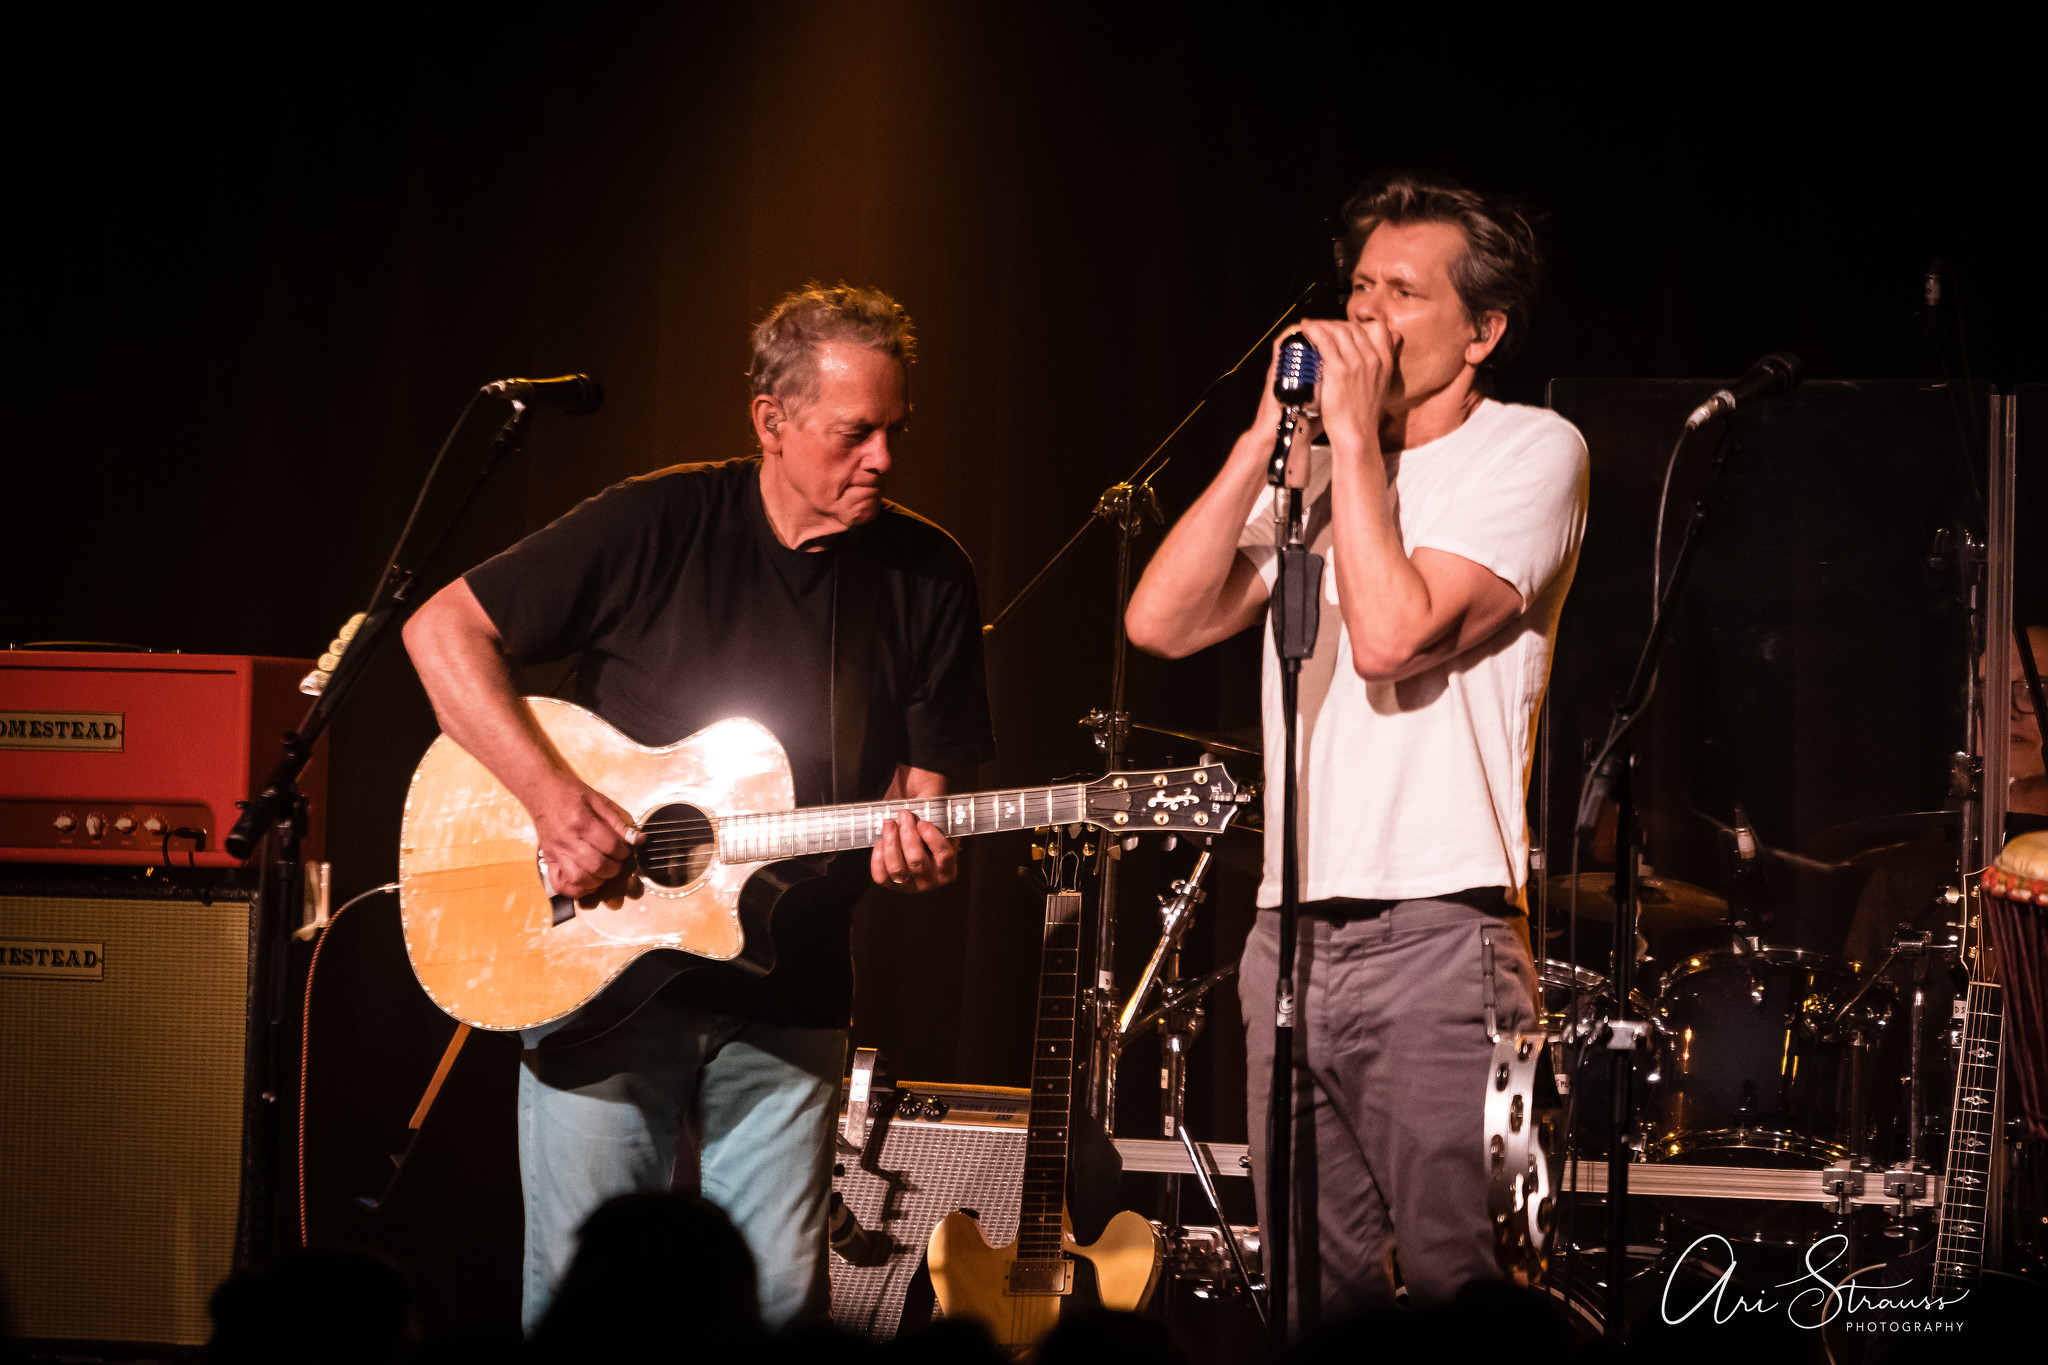 BaconBrothers